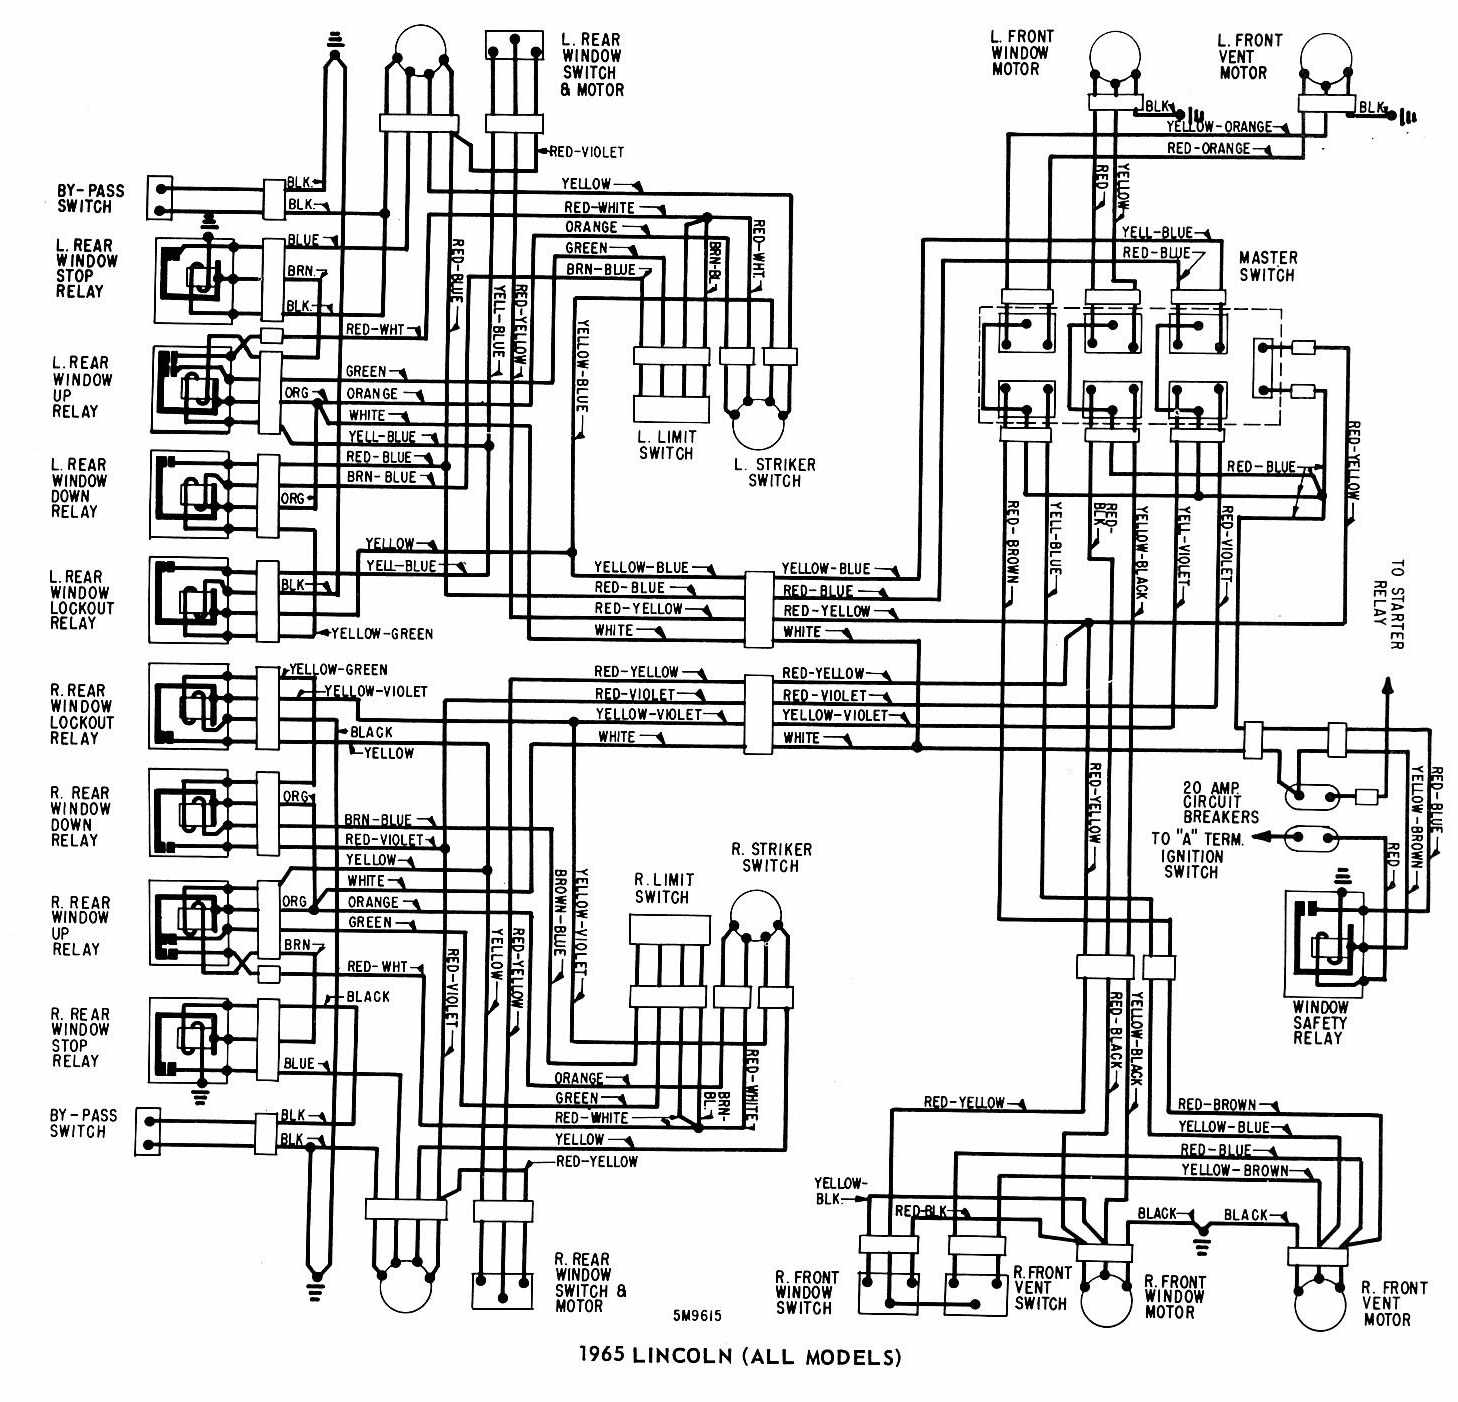 Lincoln All Models Windows Wiring Diagram